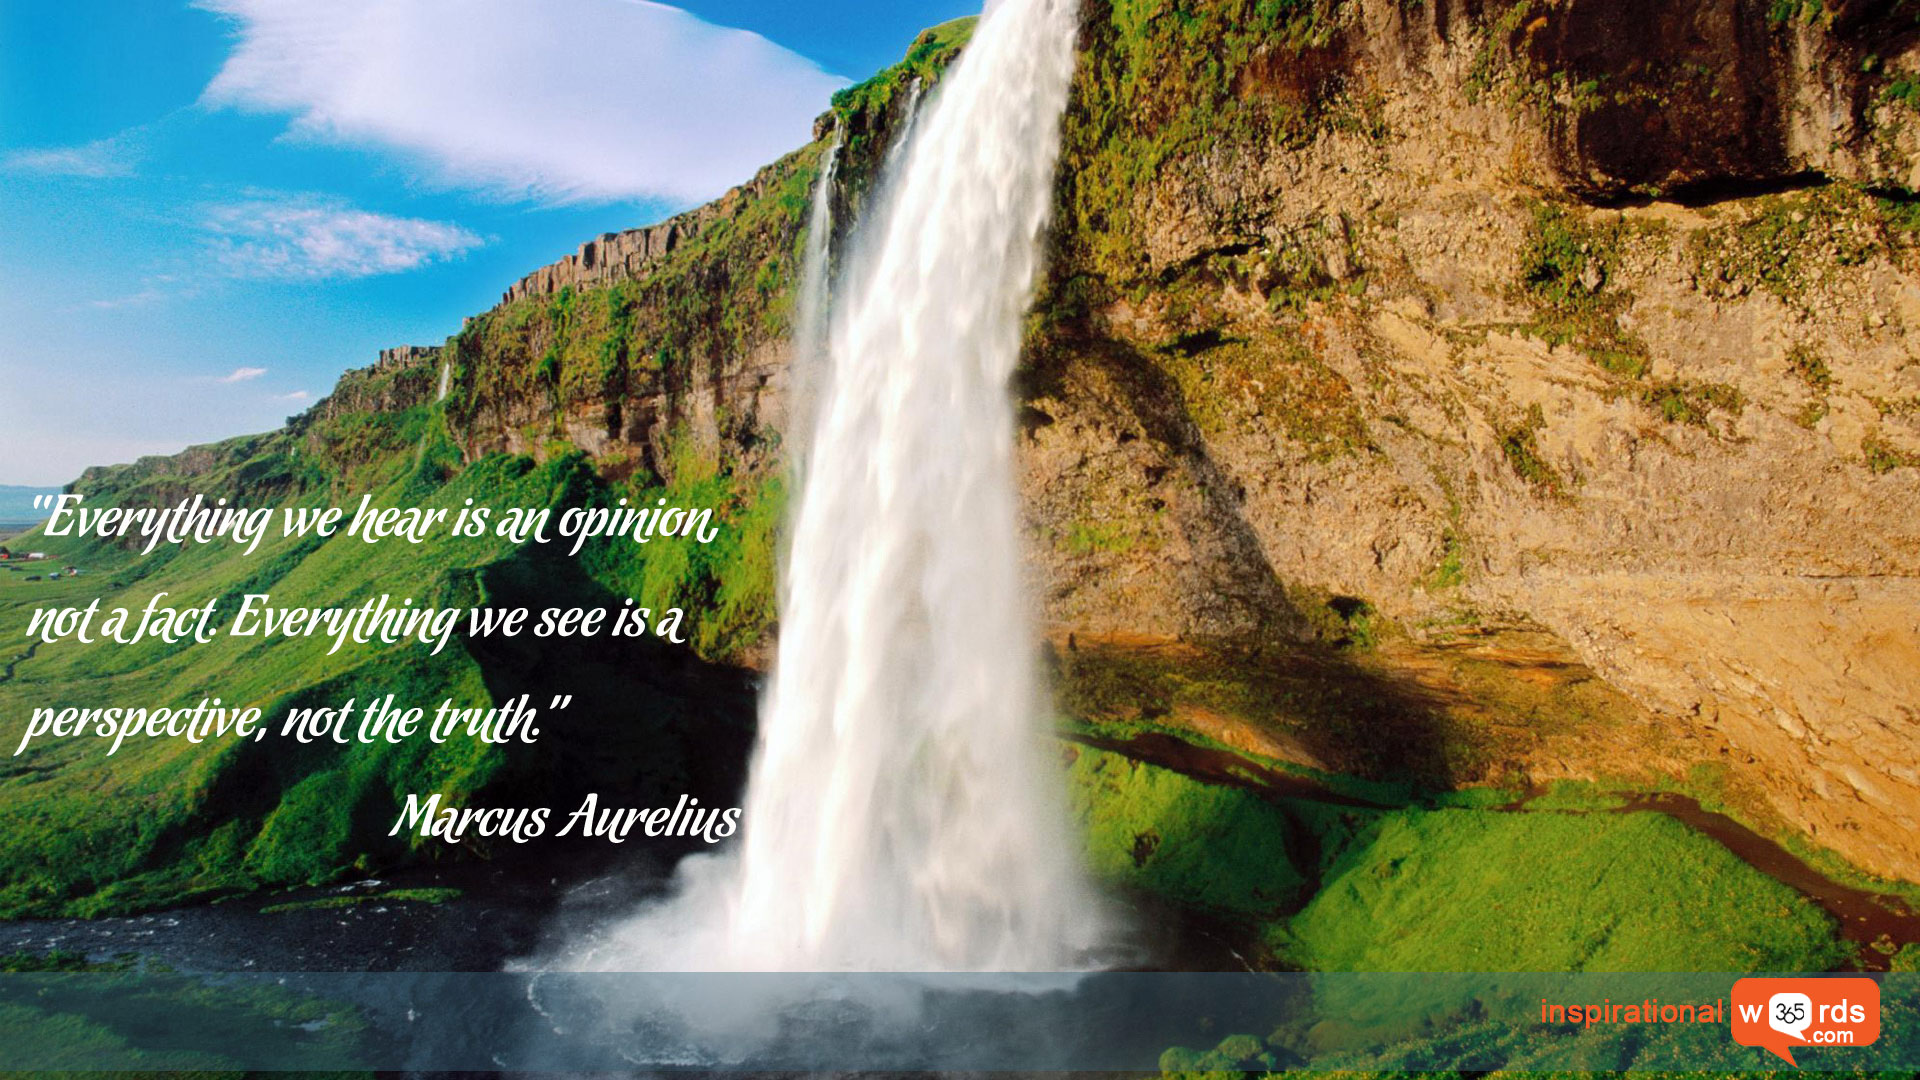 Inspirational Wallpaper Quote by Marcus Aurelius